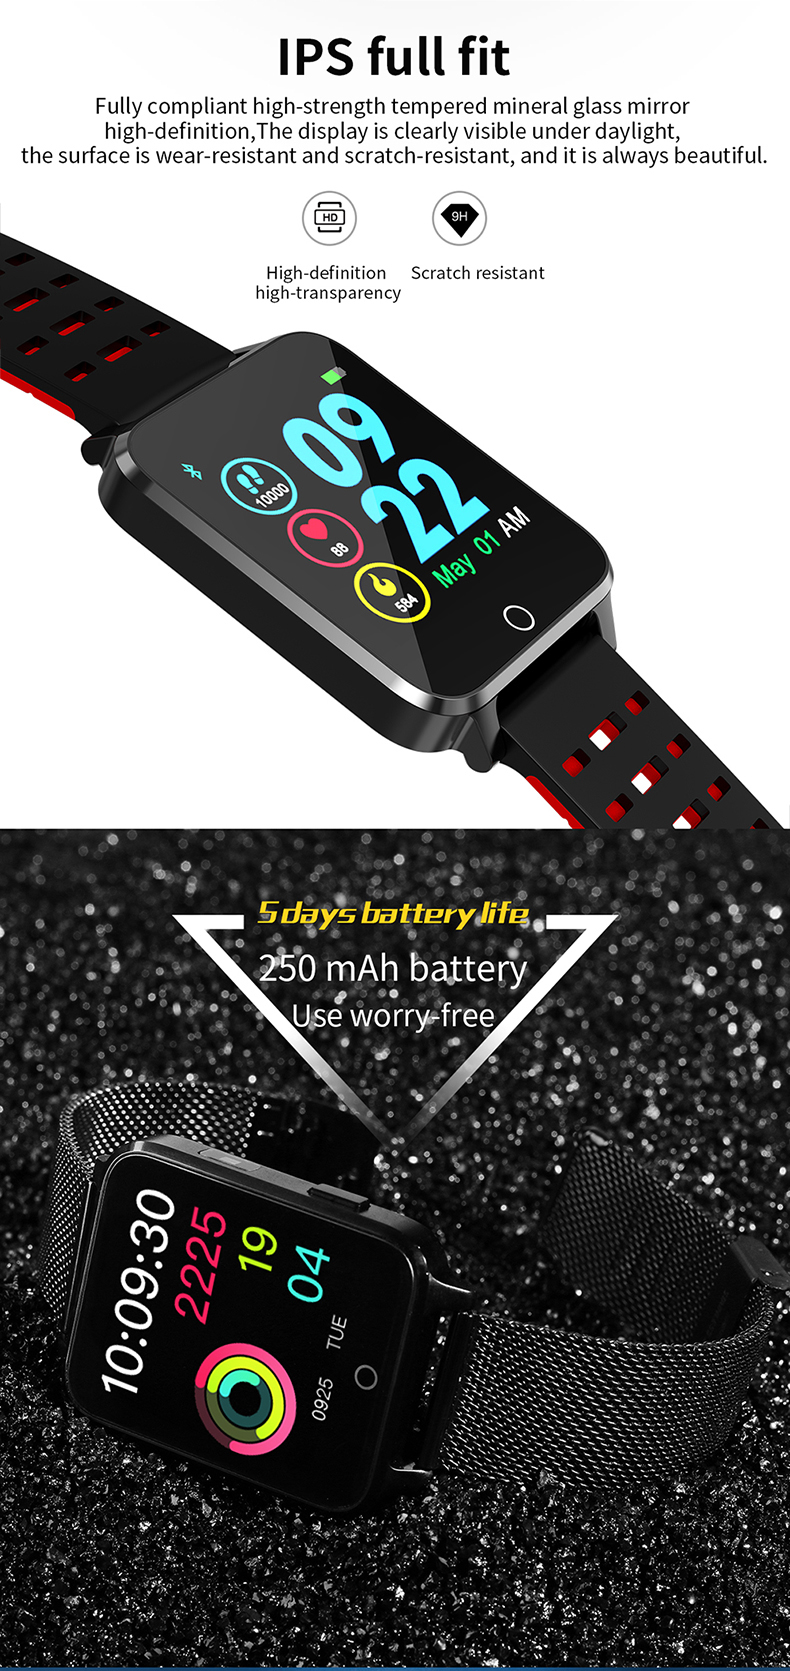 XANES X9 1.54'' TFT IPS Color Touch Screen IP68 Waterproof Smart Watch Multiple Watch Dials Heart Rate Monitor LED Lighting Fitness Smart Bracelet